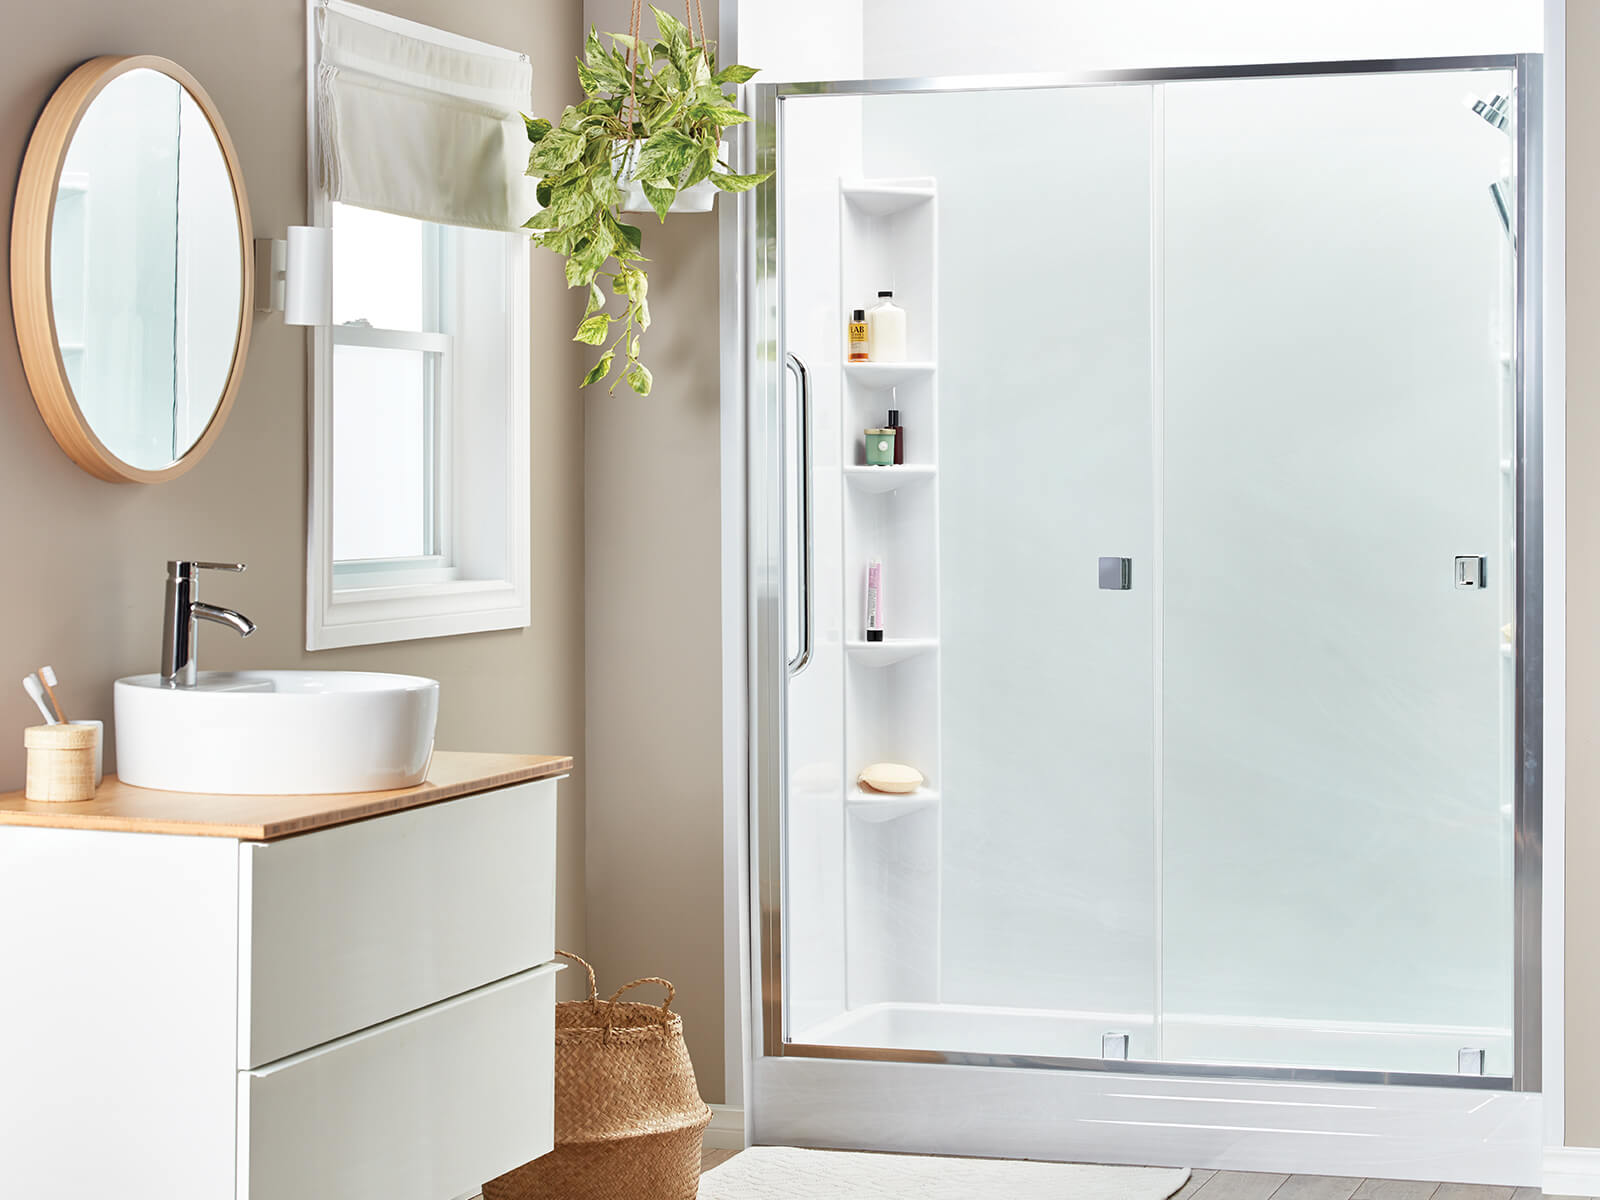 Replace your old bathtub with a new shower!